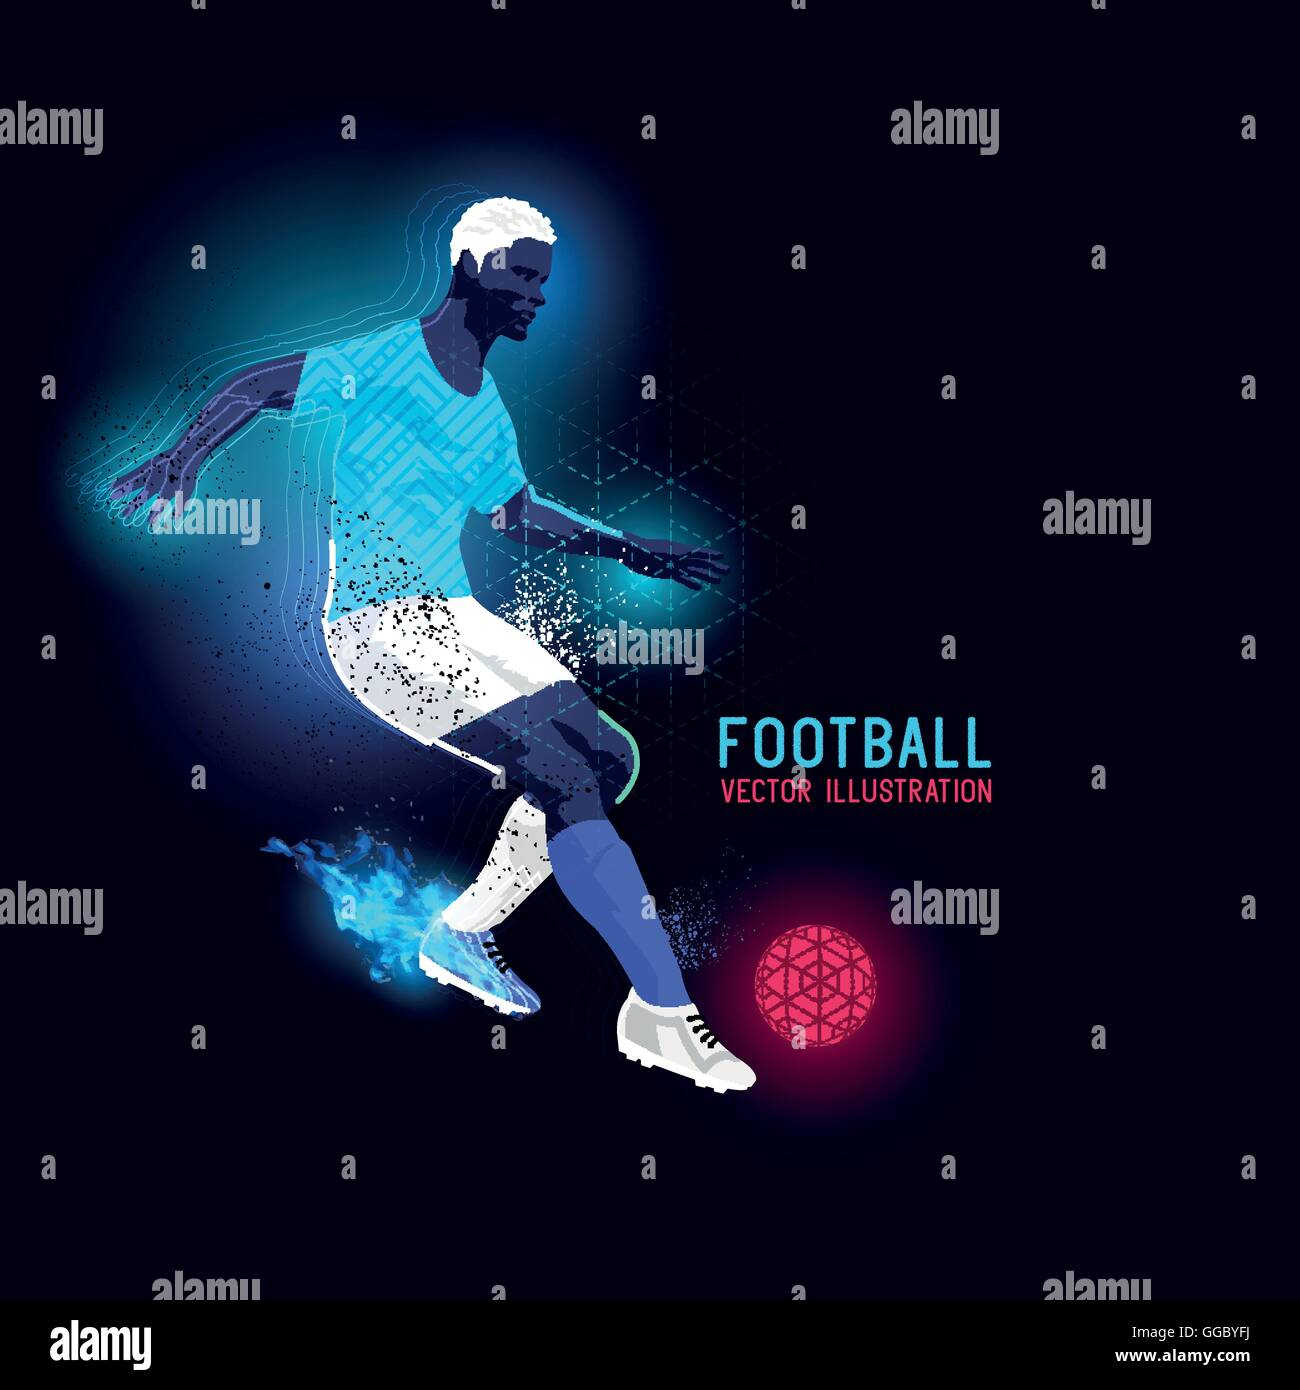 Neon glowing backlit silhouette of a football player - vector illustration - Stock Image